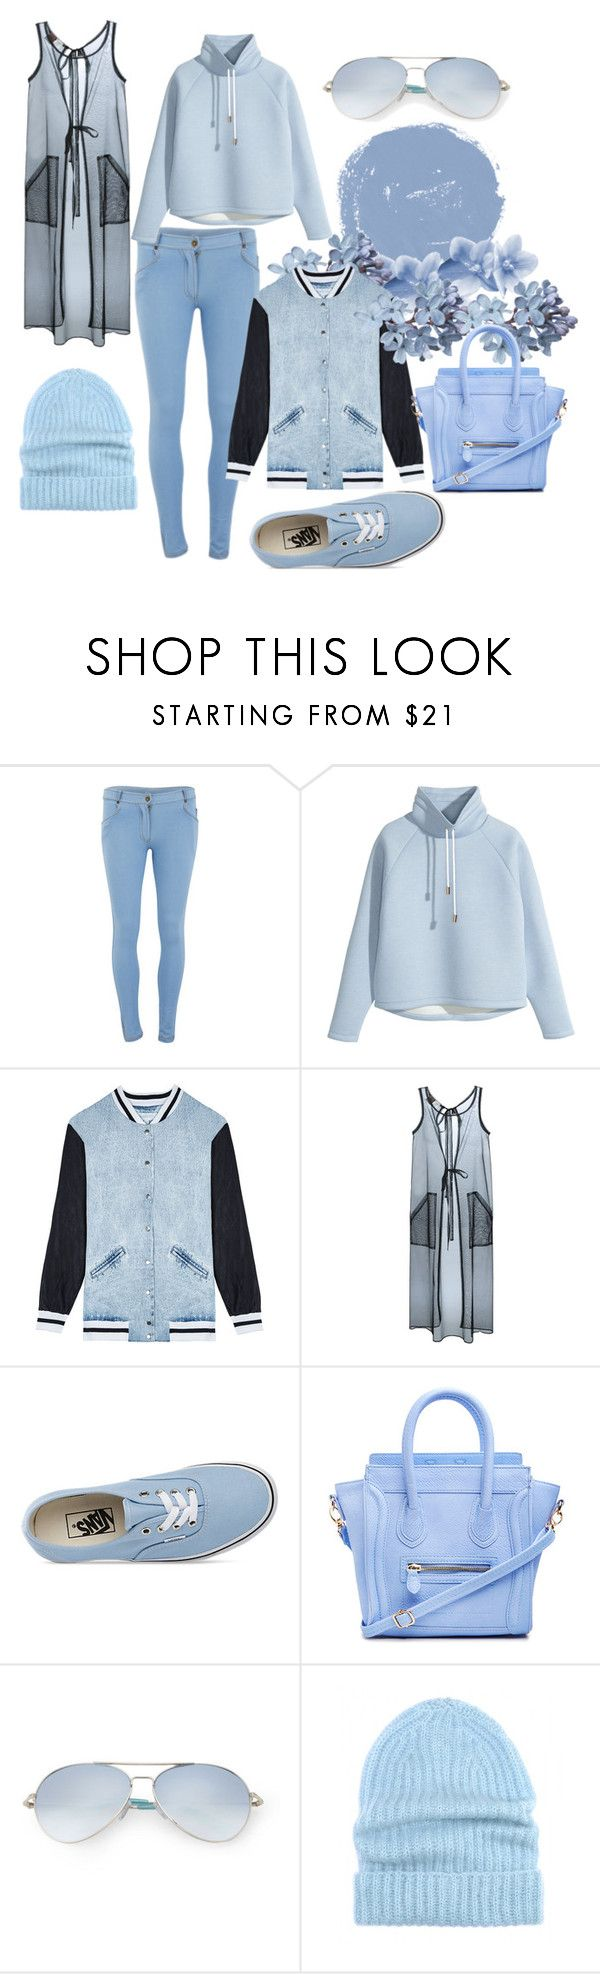 """Pastel♥"" by karimi-star ❤ liked on Polyvore featuring Influence, H&M, Finders Keepers, Jean-Paul Gaultier, Vans, DailyLook, Matthew Williamson and Tak.Ori"